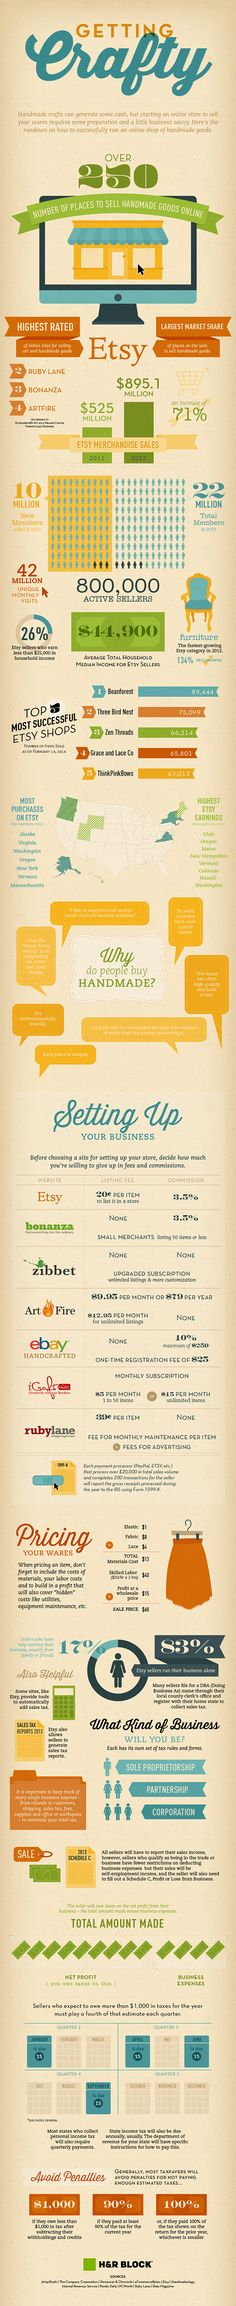 Getting Crafty: Cute infographic on steps on how to sell handmade goods over the Internet. Getting Crafty: Cute infographic on steps on how to sell handmade goods over the Internet. Crafts To Make And Sell, How To Make Money, Barn Wood Crafts, Easy Jobs, Selling On Ebay, Sell On Etsy, Craft Fairs, Making Ideas, Fundraising